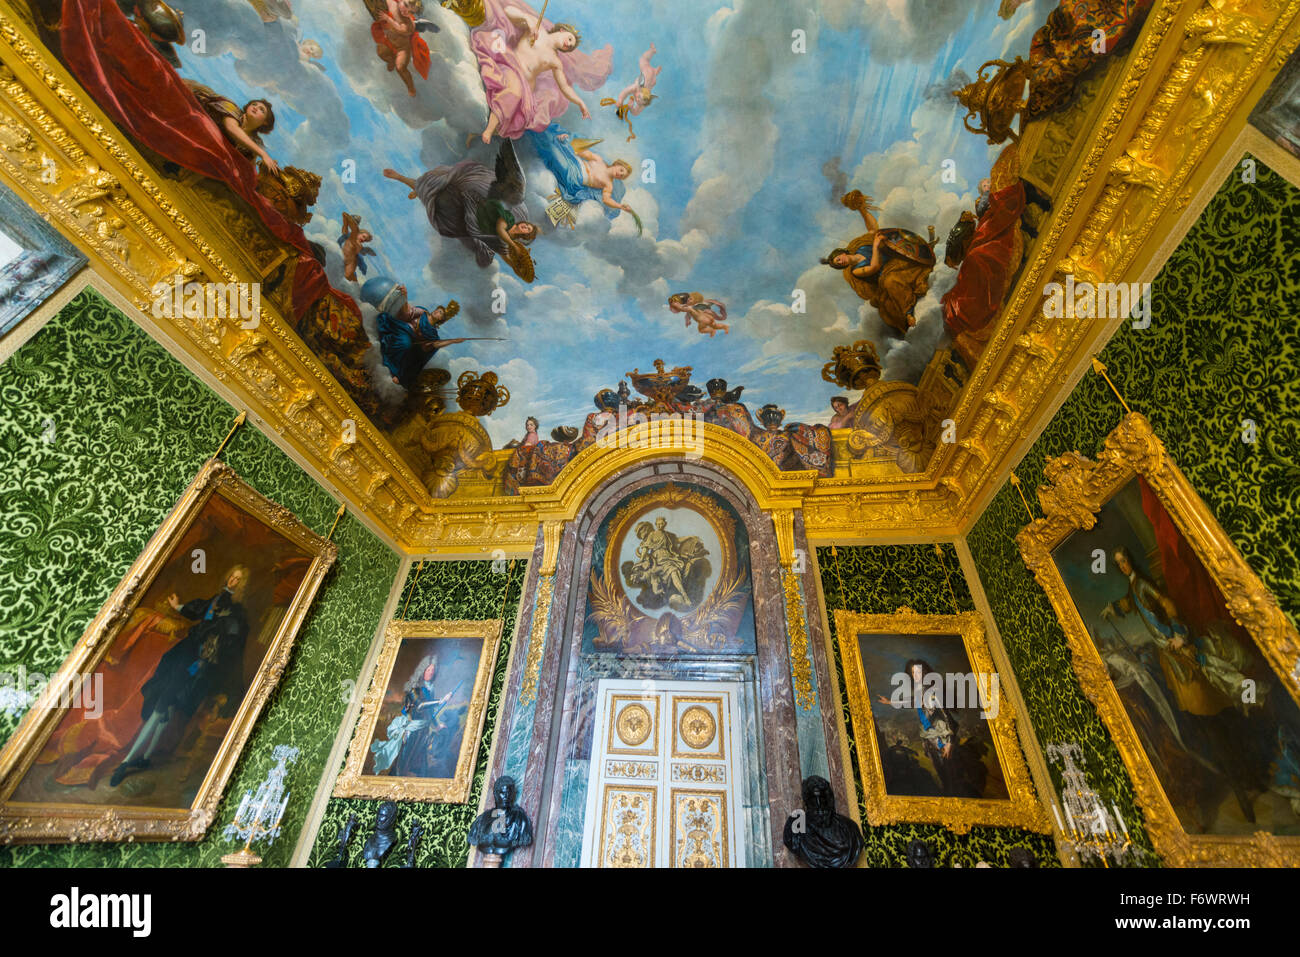 Historical room with ceiling frescos, Palace of Versailles, UNESCO World Heritage Site, Yvelines, Region Ile-de - Stock Image